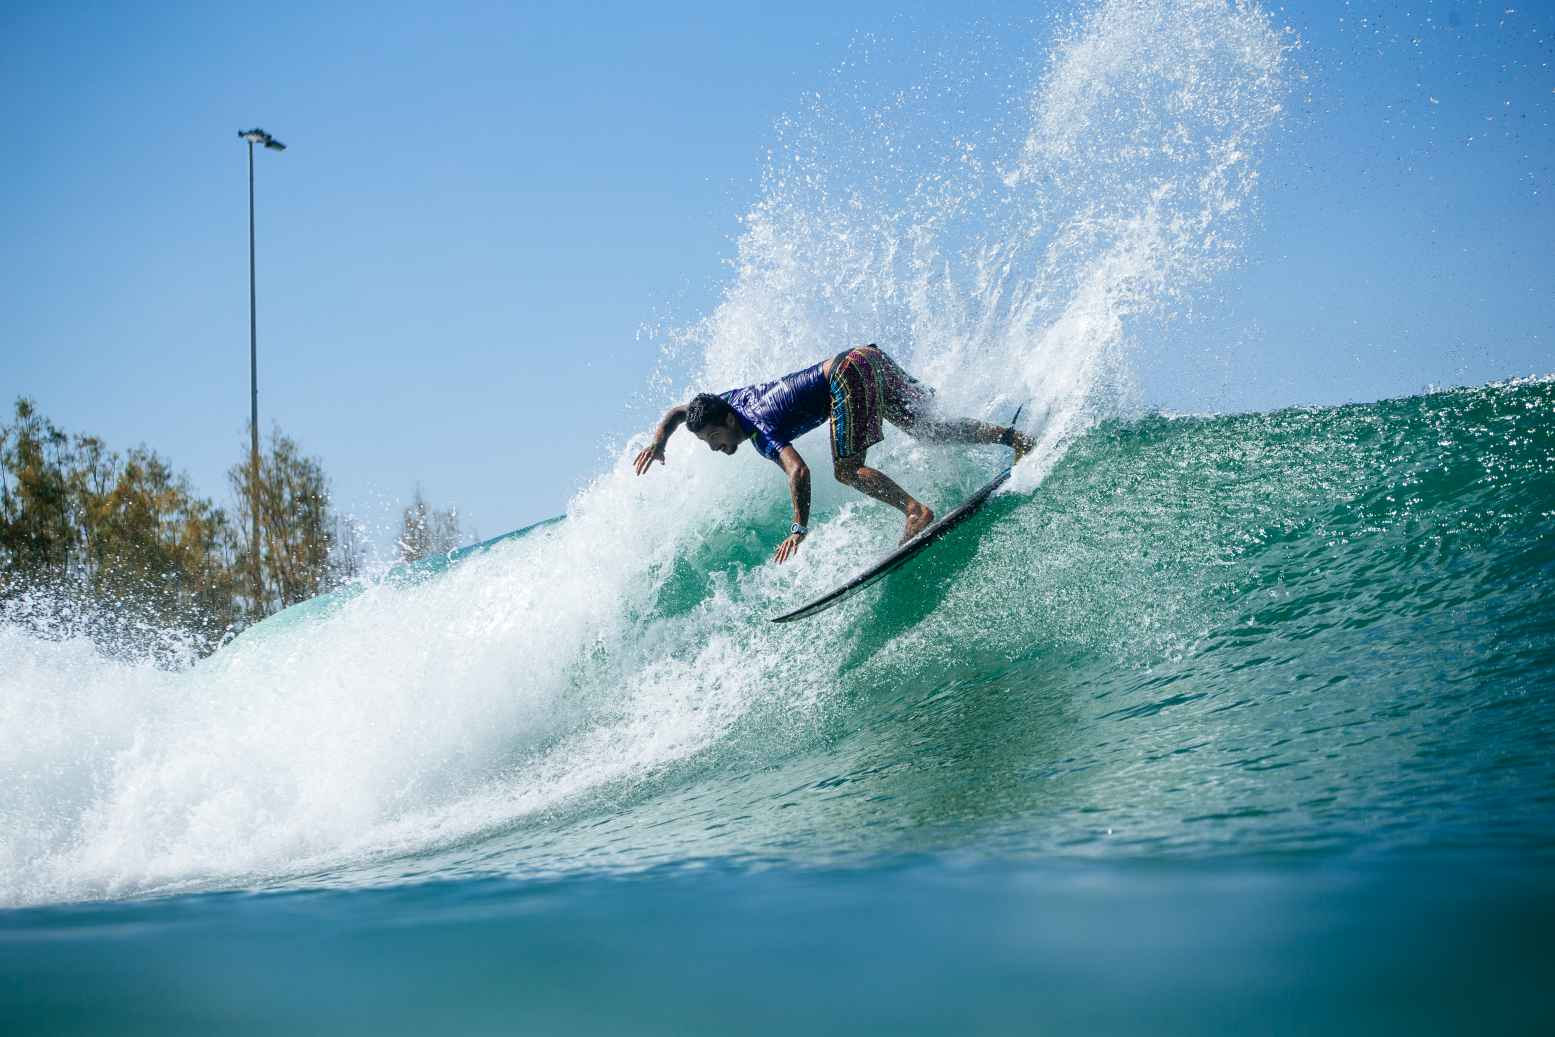 surf30 surf ranch pro 2021 wsl surf Toled F Ranch21 KMS 1600